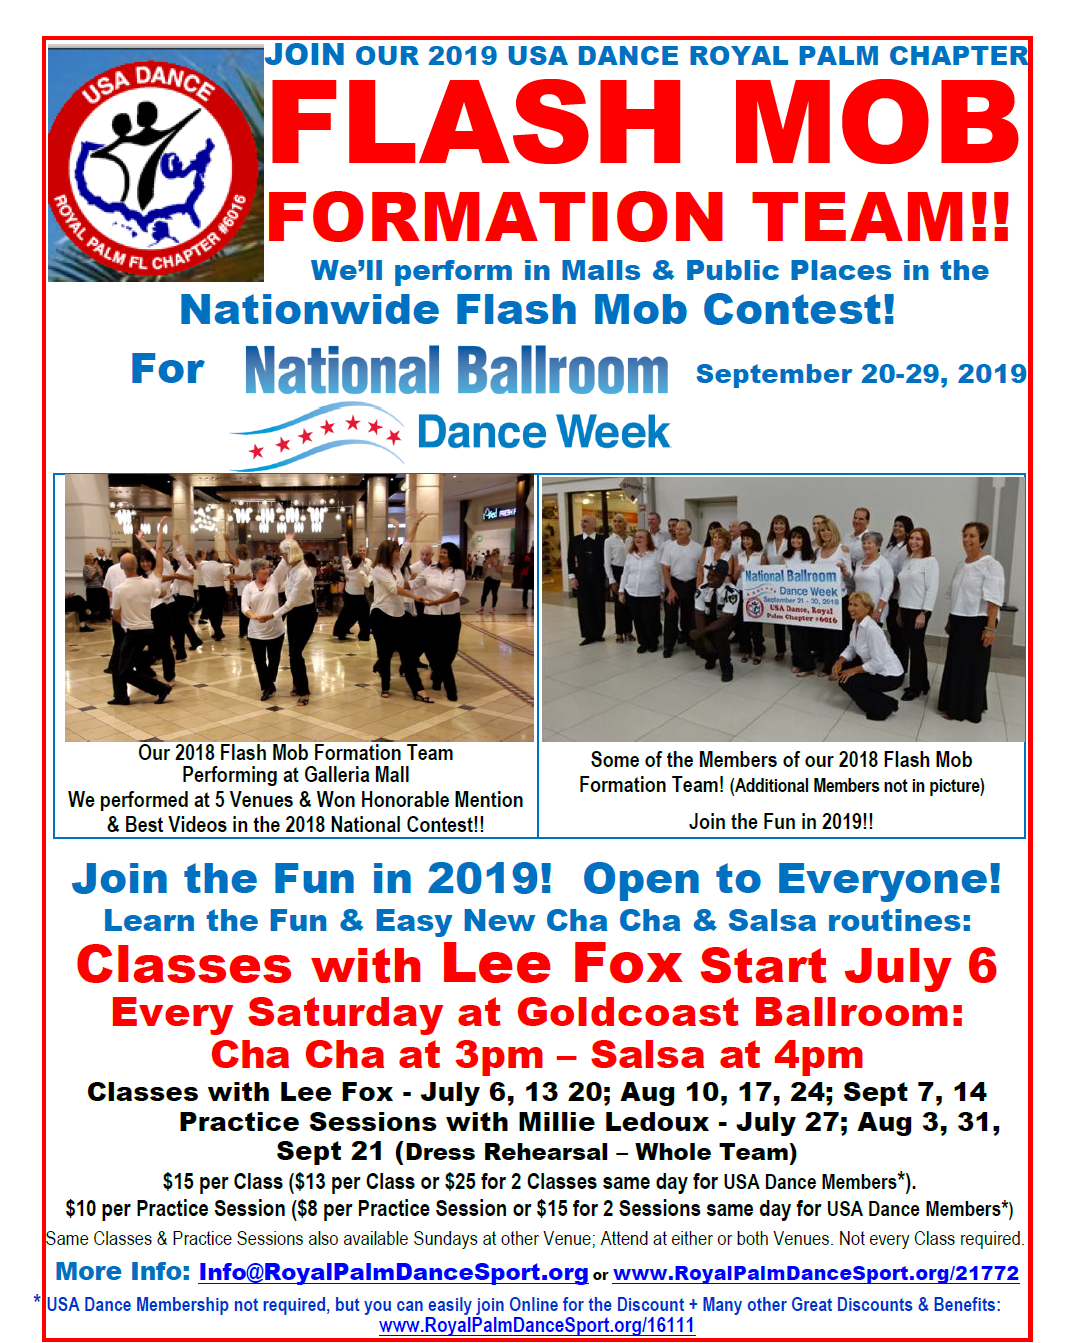 FLASH MOB Formation Team Classes - Every Saturday Afternoon at Goldcoast Ballroom! - Join the Fun! Join our Team in the National Flash Mob Contest!!